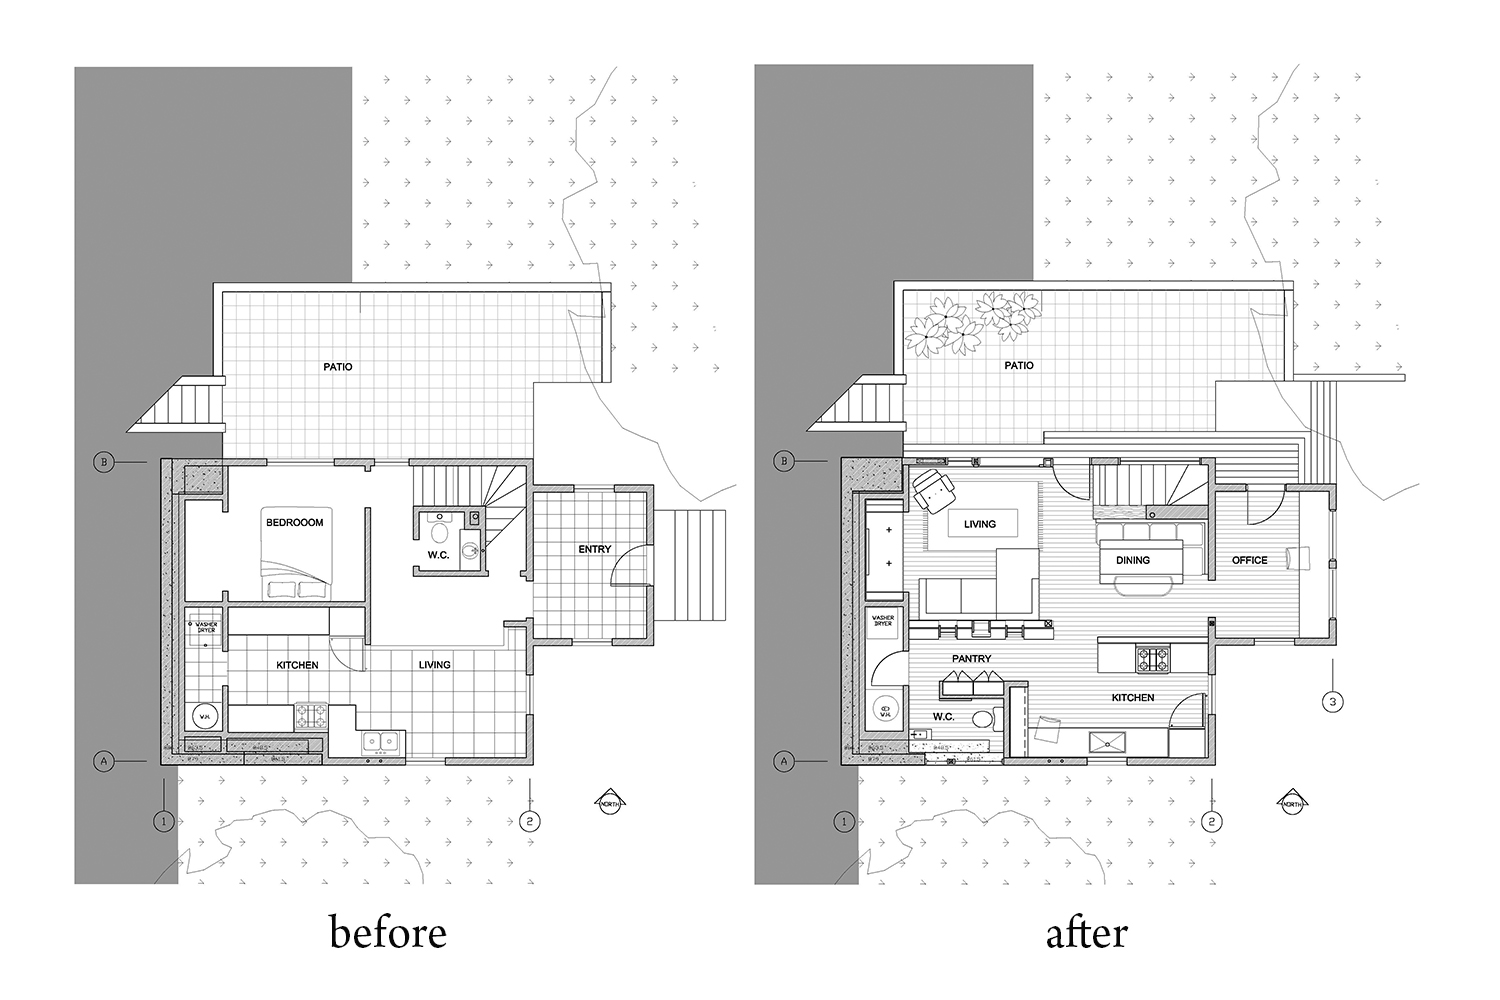 10-bunch-elysian house-before-after-plan.jpg